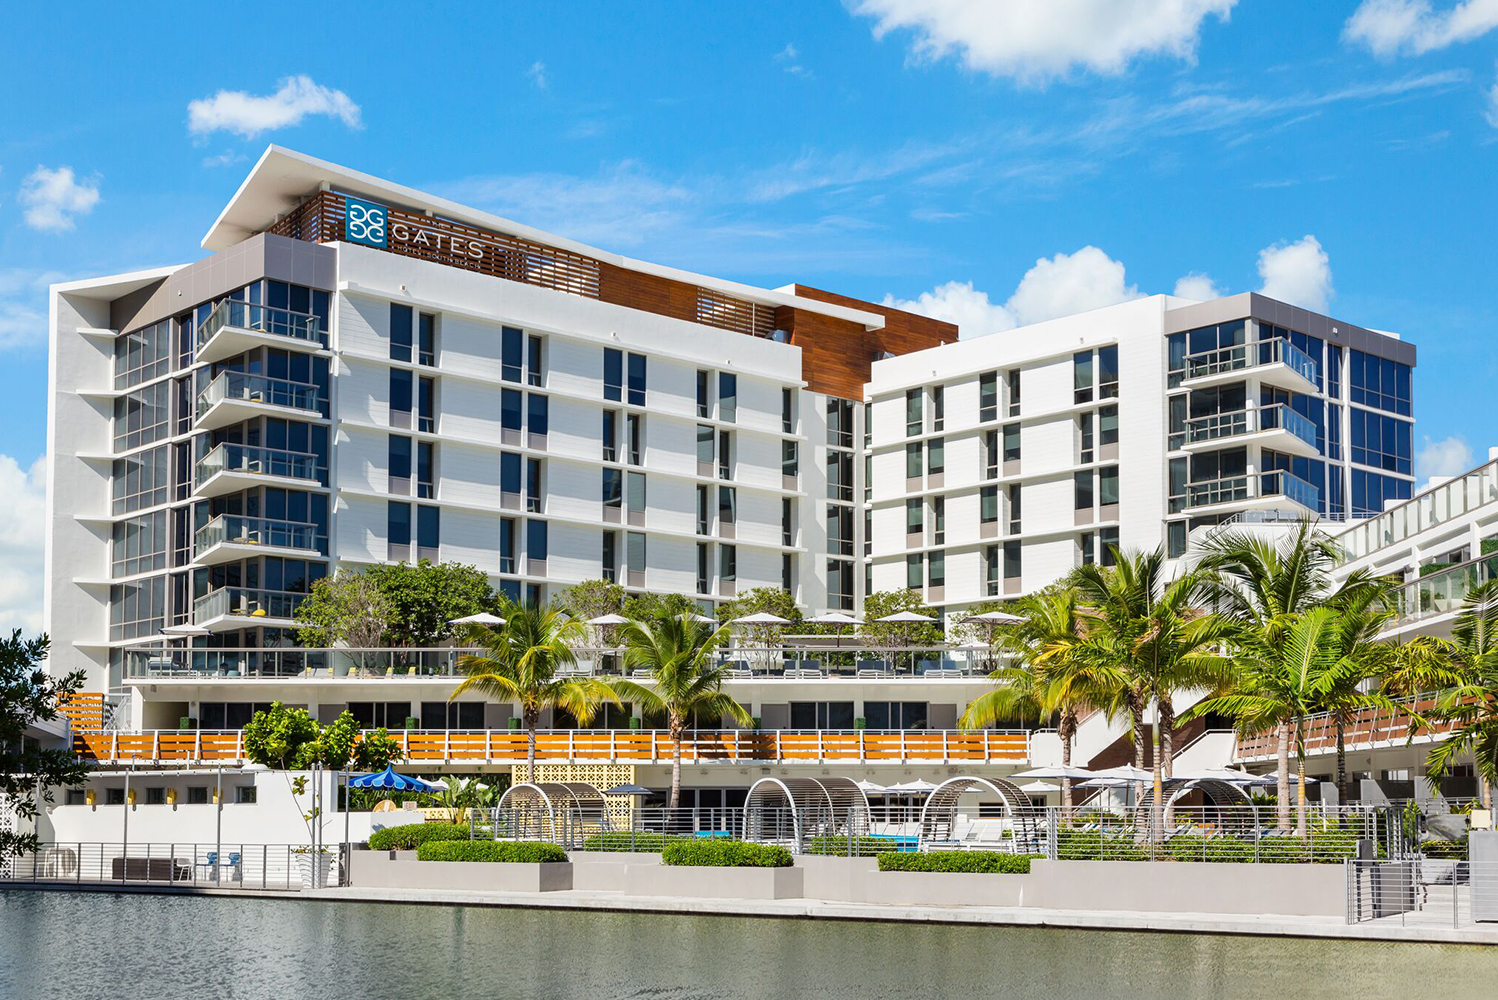 The Gates Hotel South Beach – a DoubleTree by Hilton, located on Miami's Collins Avenue, was renovated.